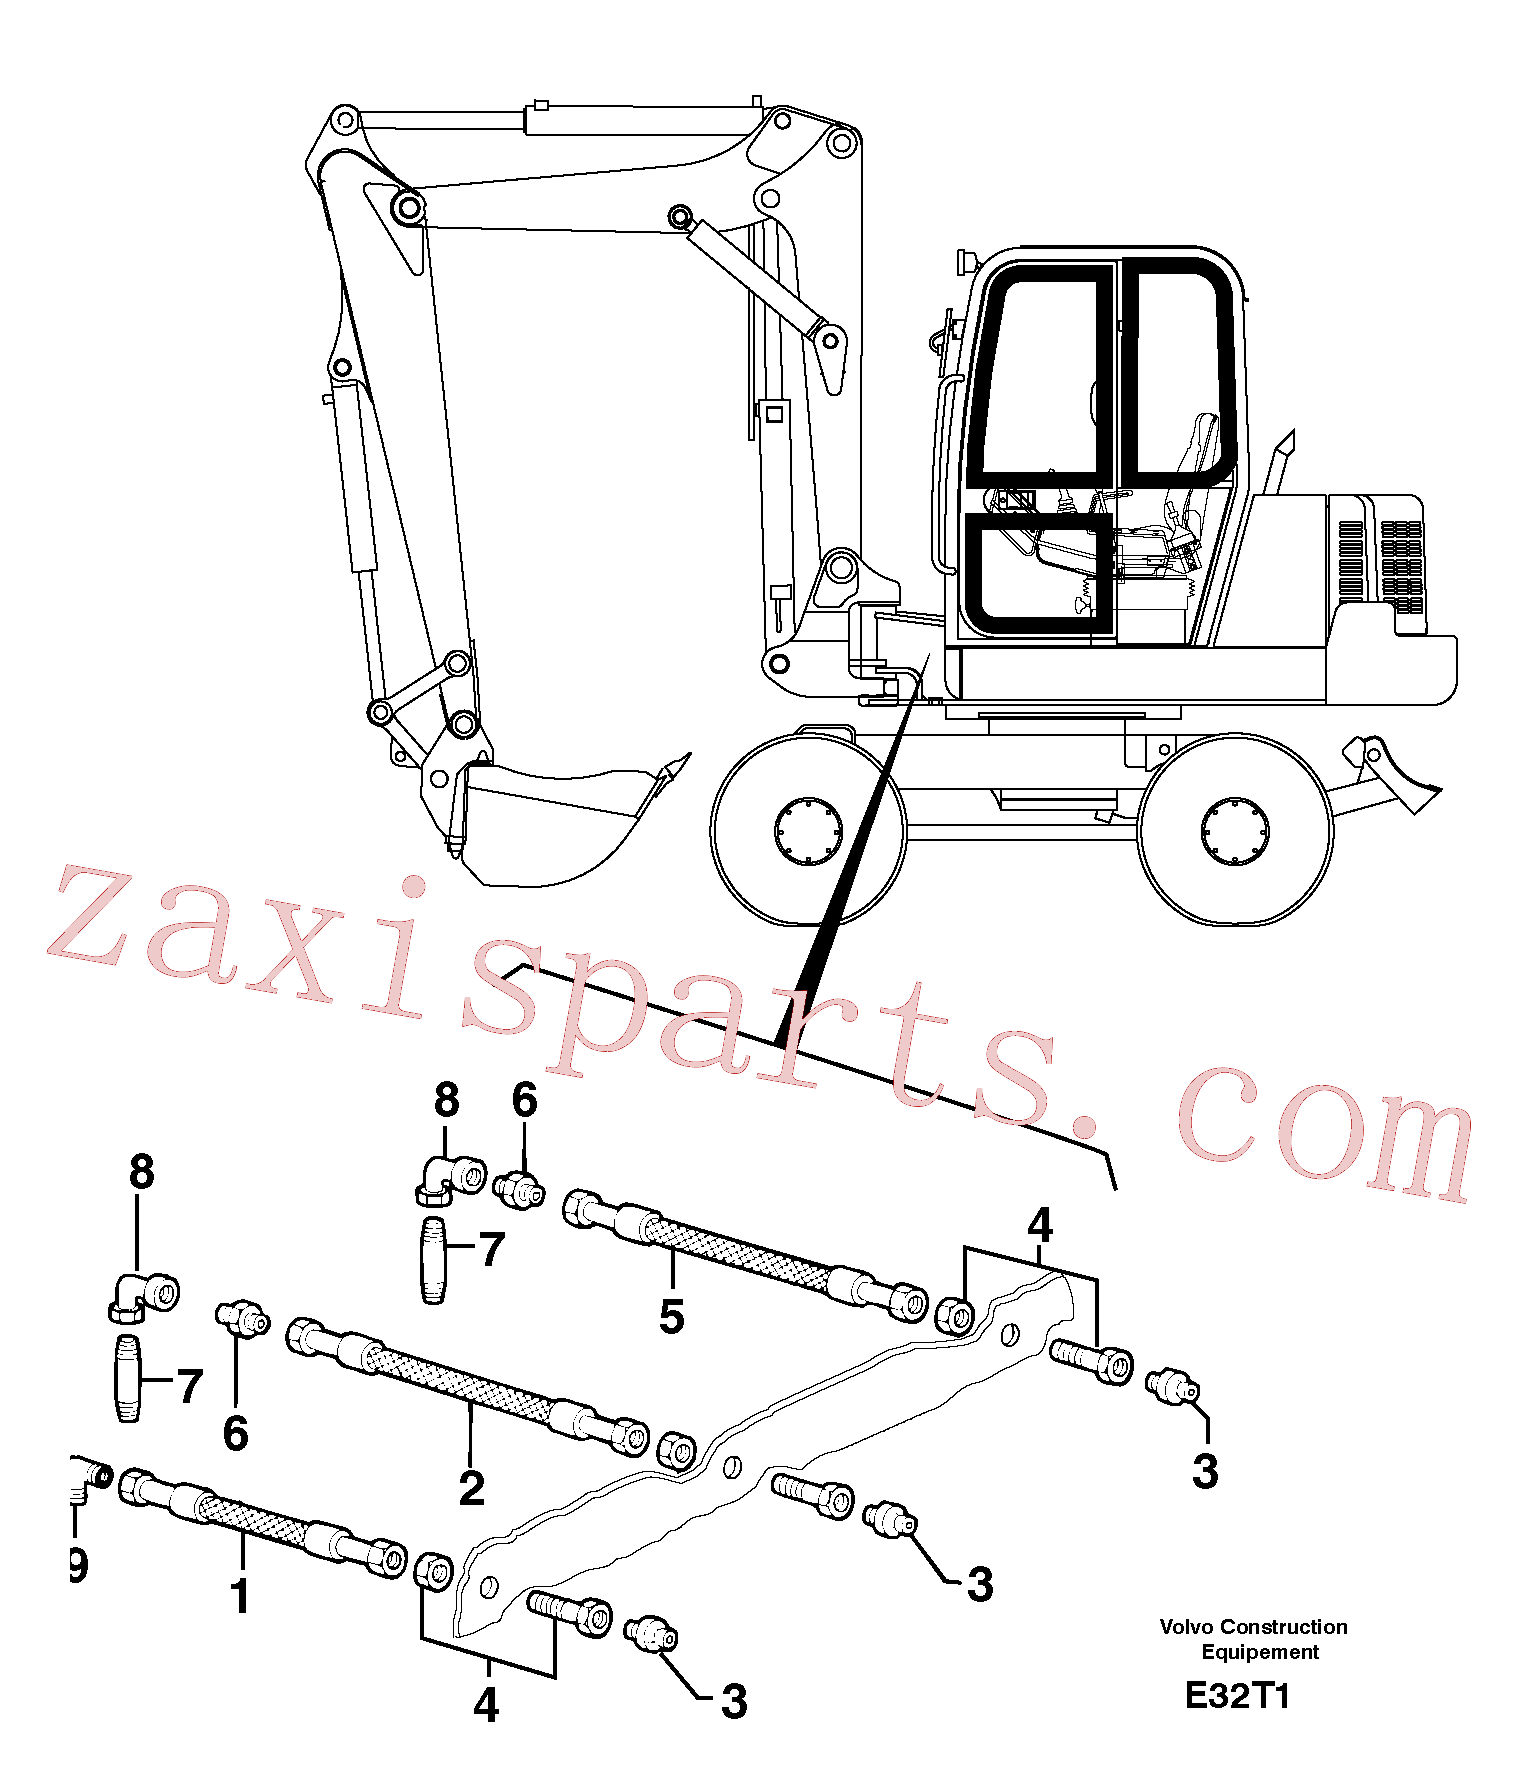 PJ4190183 for Volvo Lubrication chart(E32T1 assembly)